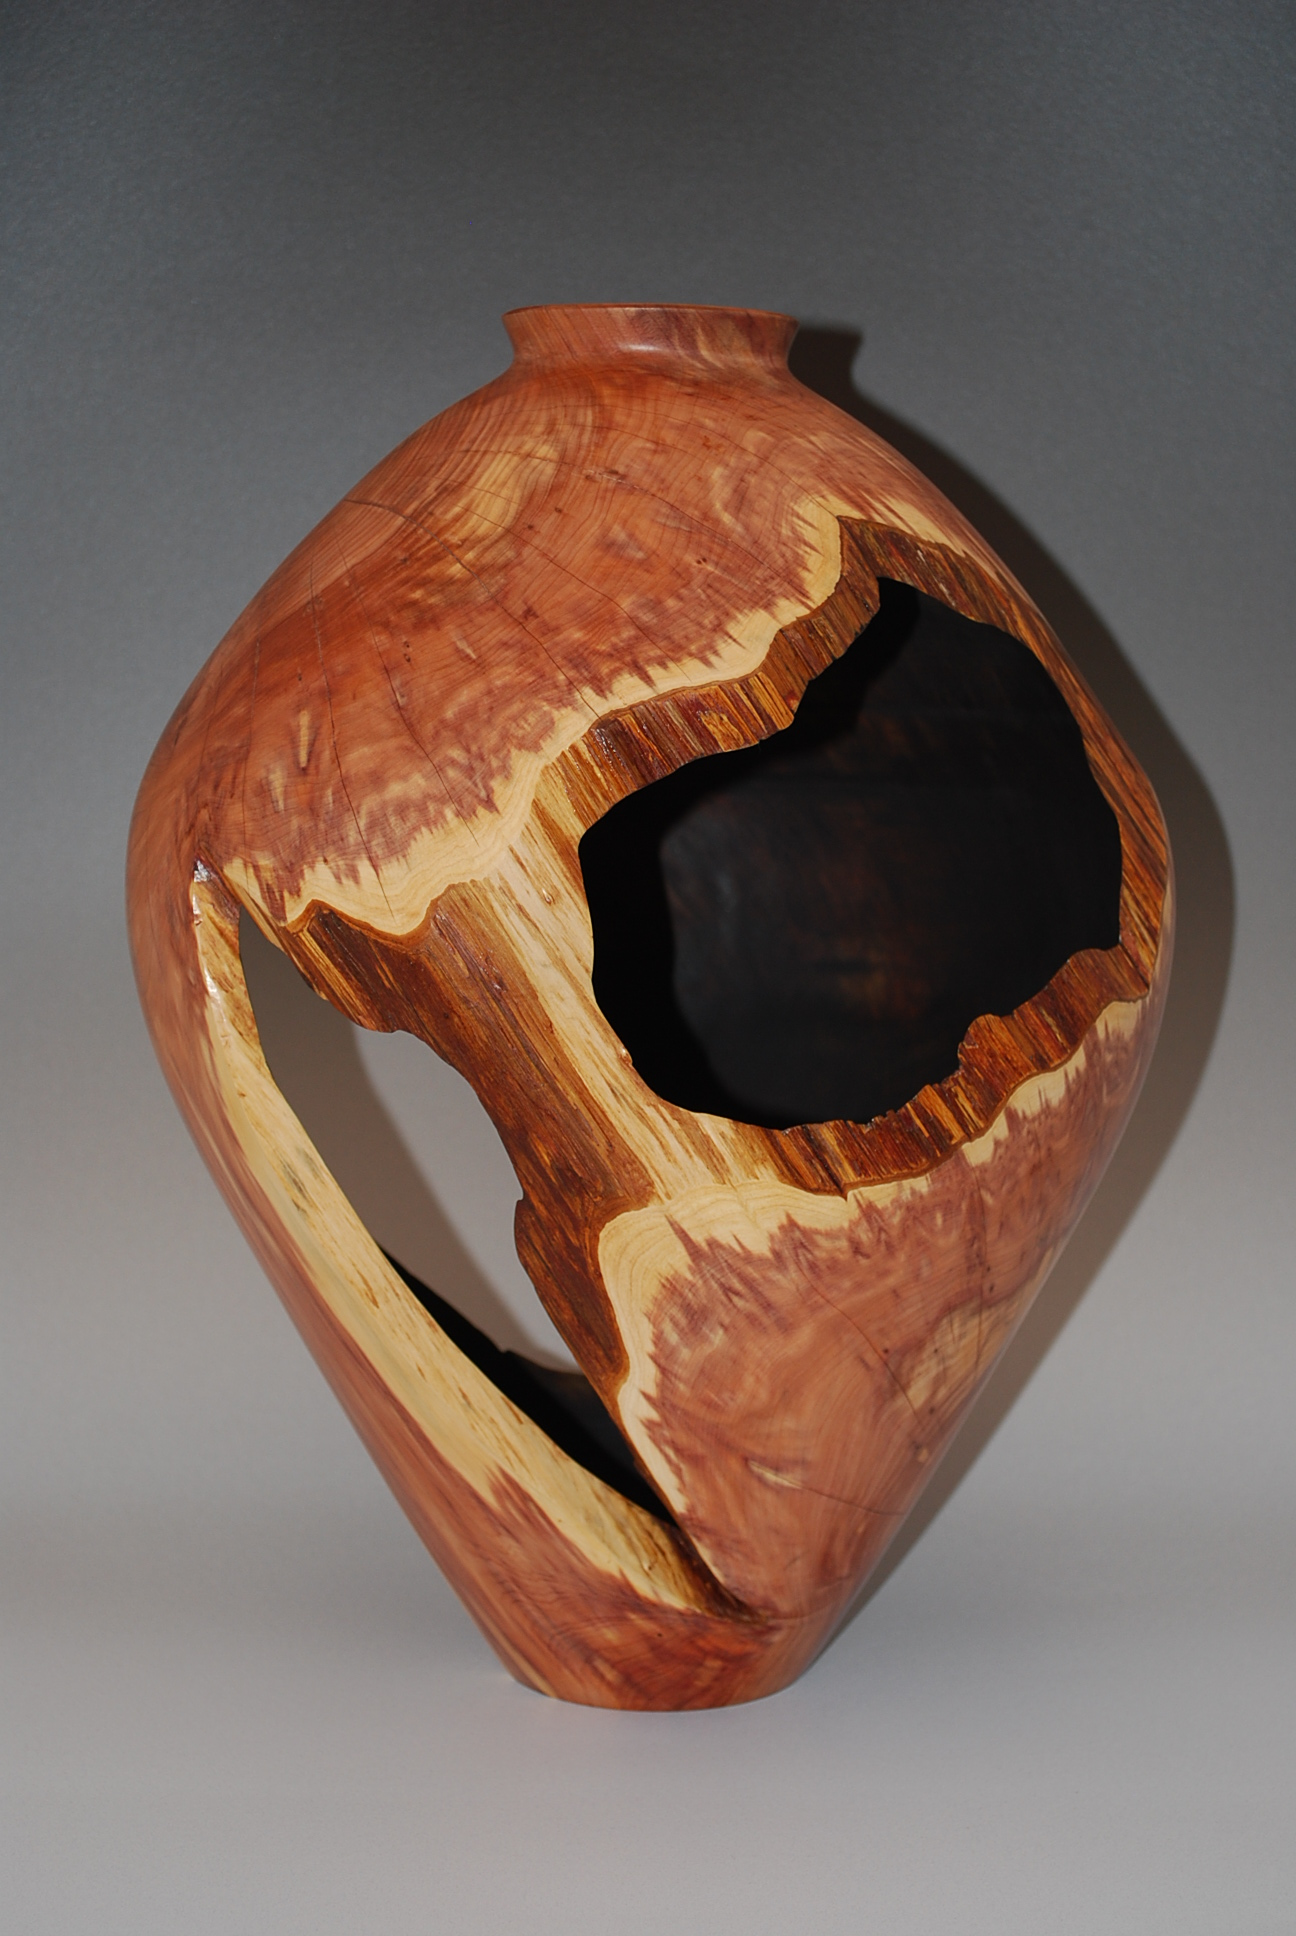 Cedar Hollow Form completed, Tree brought down by Hurricane Katrina, 2005